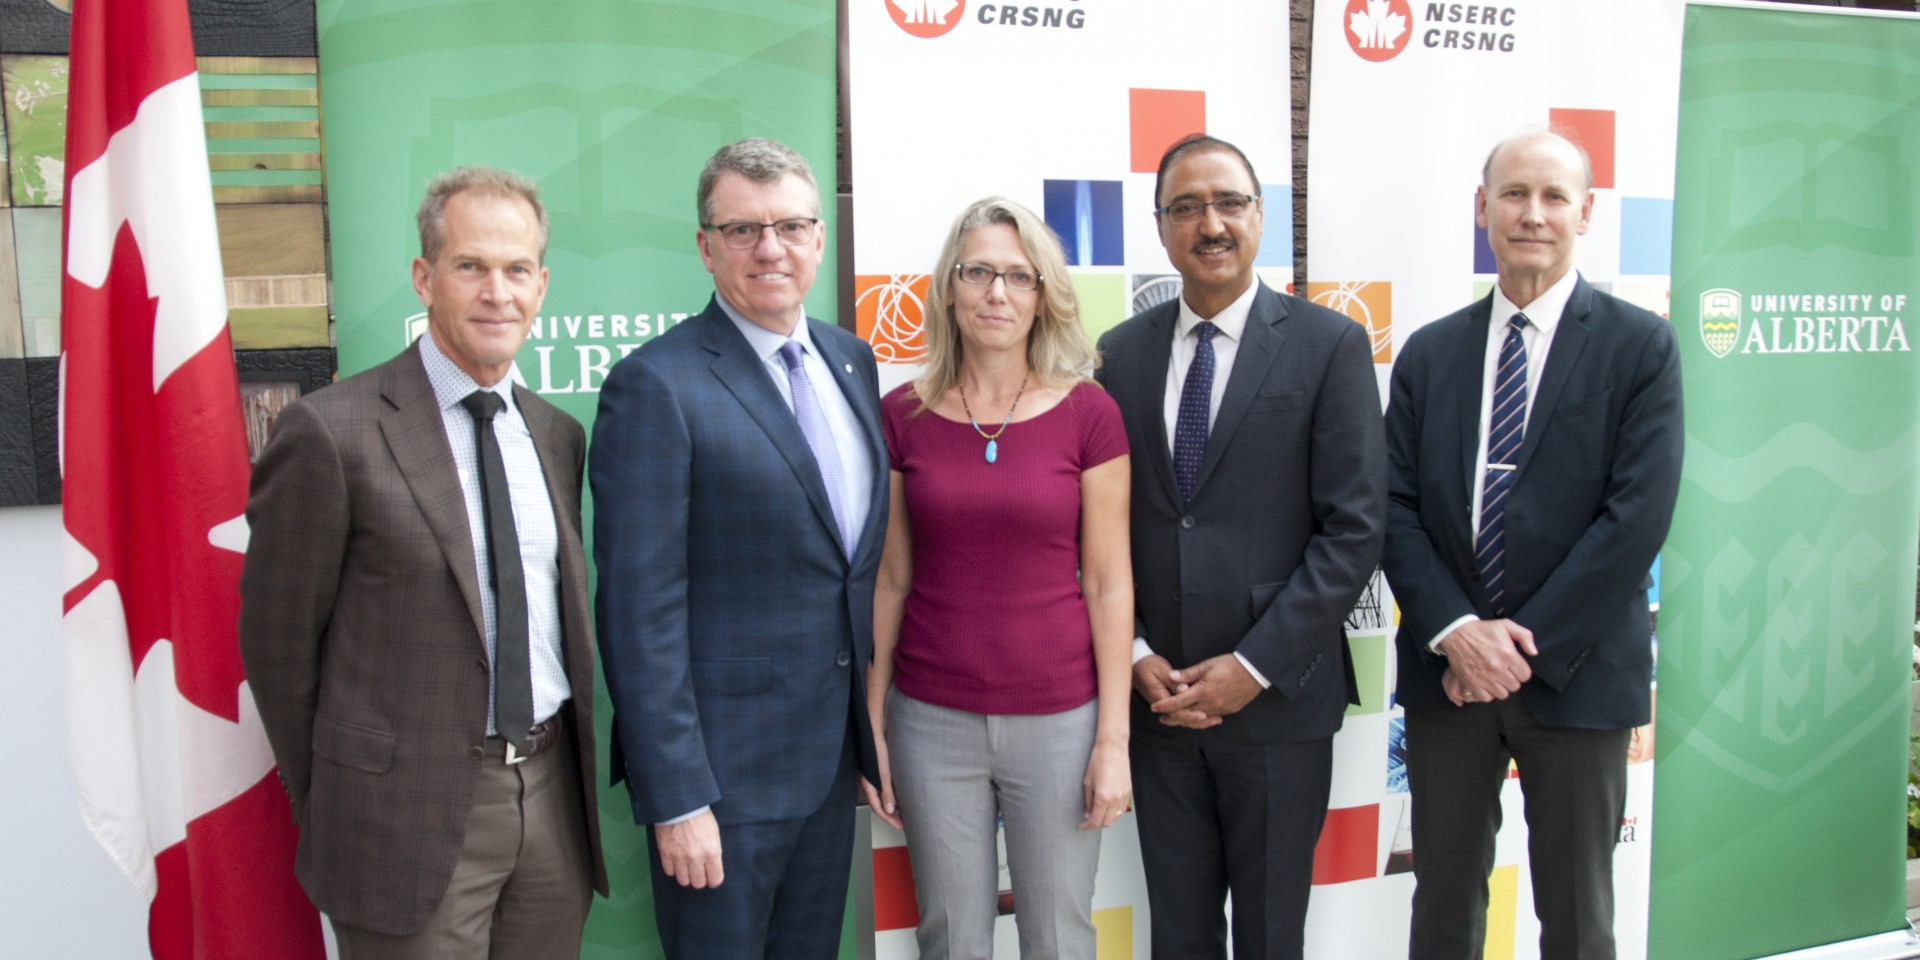 (From left) Alfred LeBlanc, UAlberta president David Turpin, Justine Karst,  Hon. Amerjeet Sohi and Walter Dixon were on hand to announce $26.1 million in funding from NSERC. (Photo by Michael Brown)